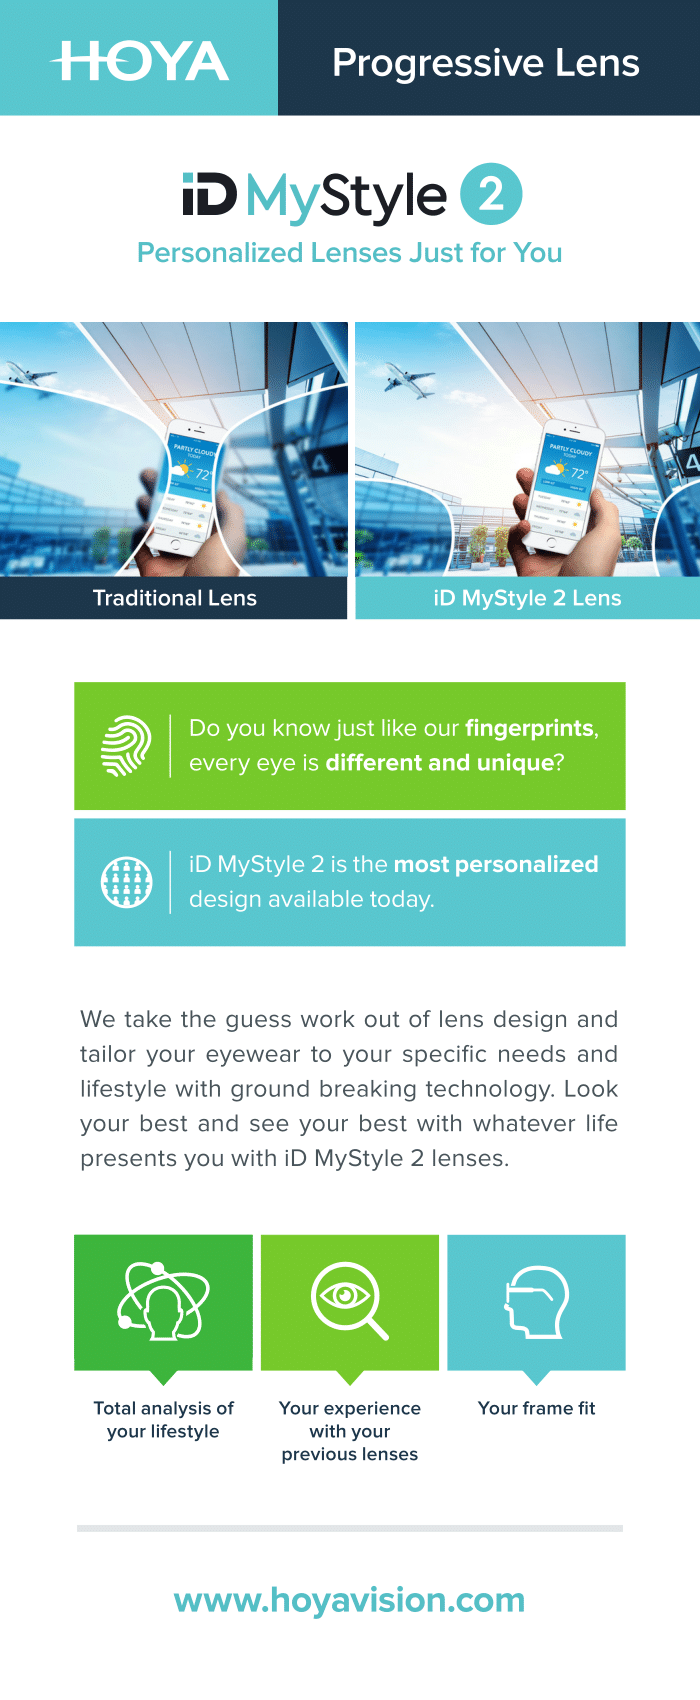 iD MyStyle 2 Personalized Lenses